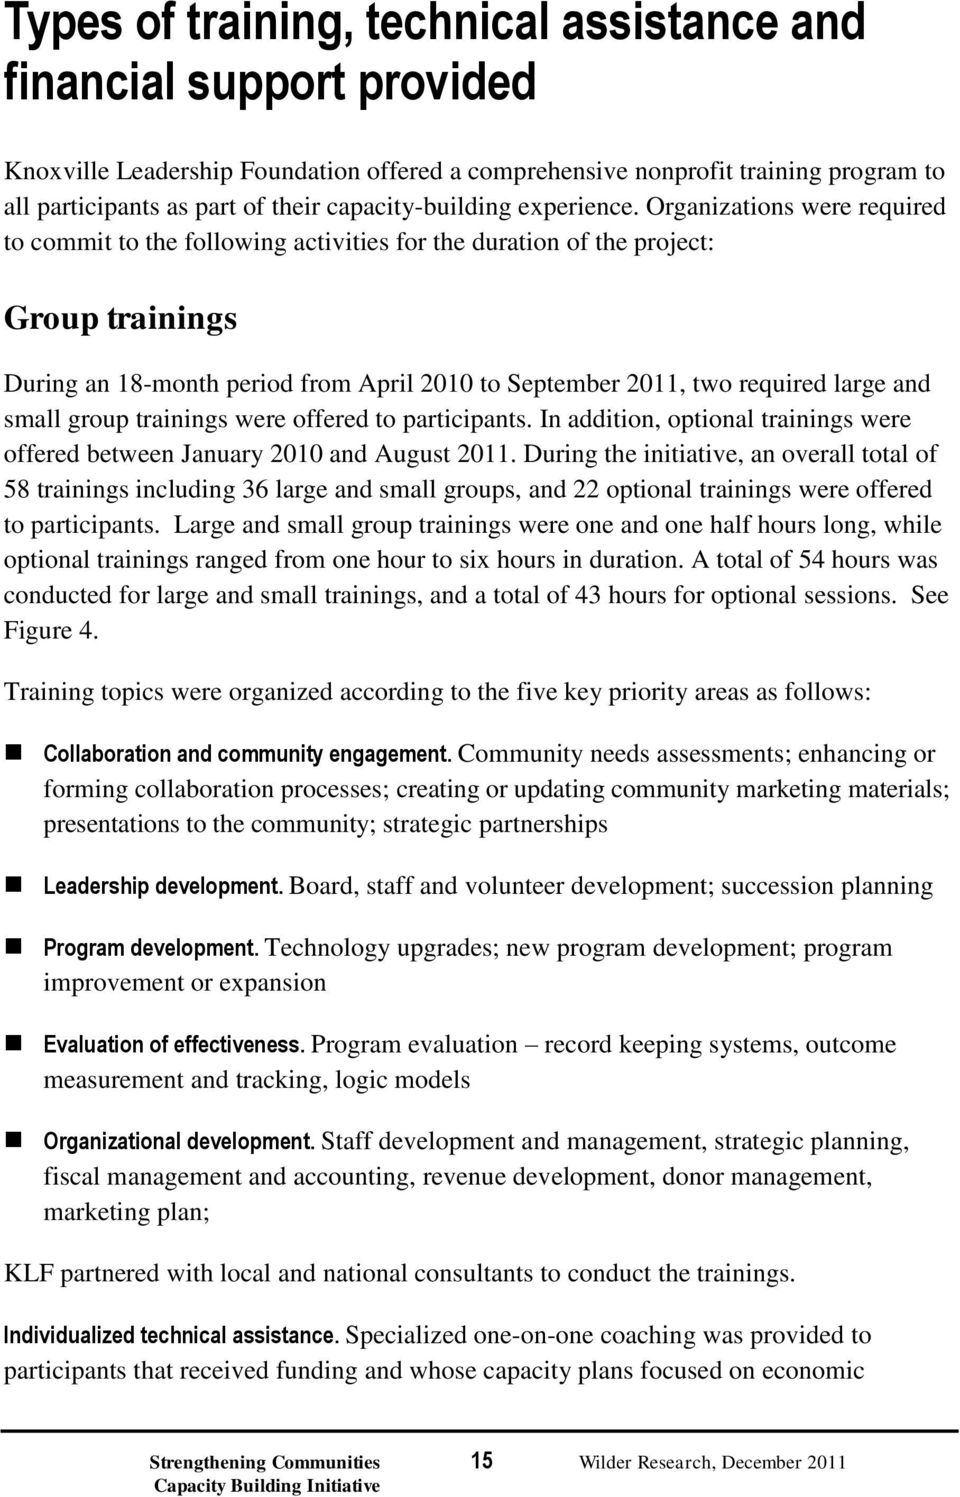 Organizations were required to commit to the following activities for the duration of the project: Group trainings During an 18-month period from April 2010 to September 2011, two required large and